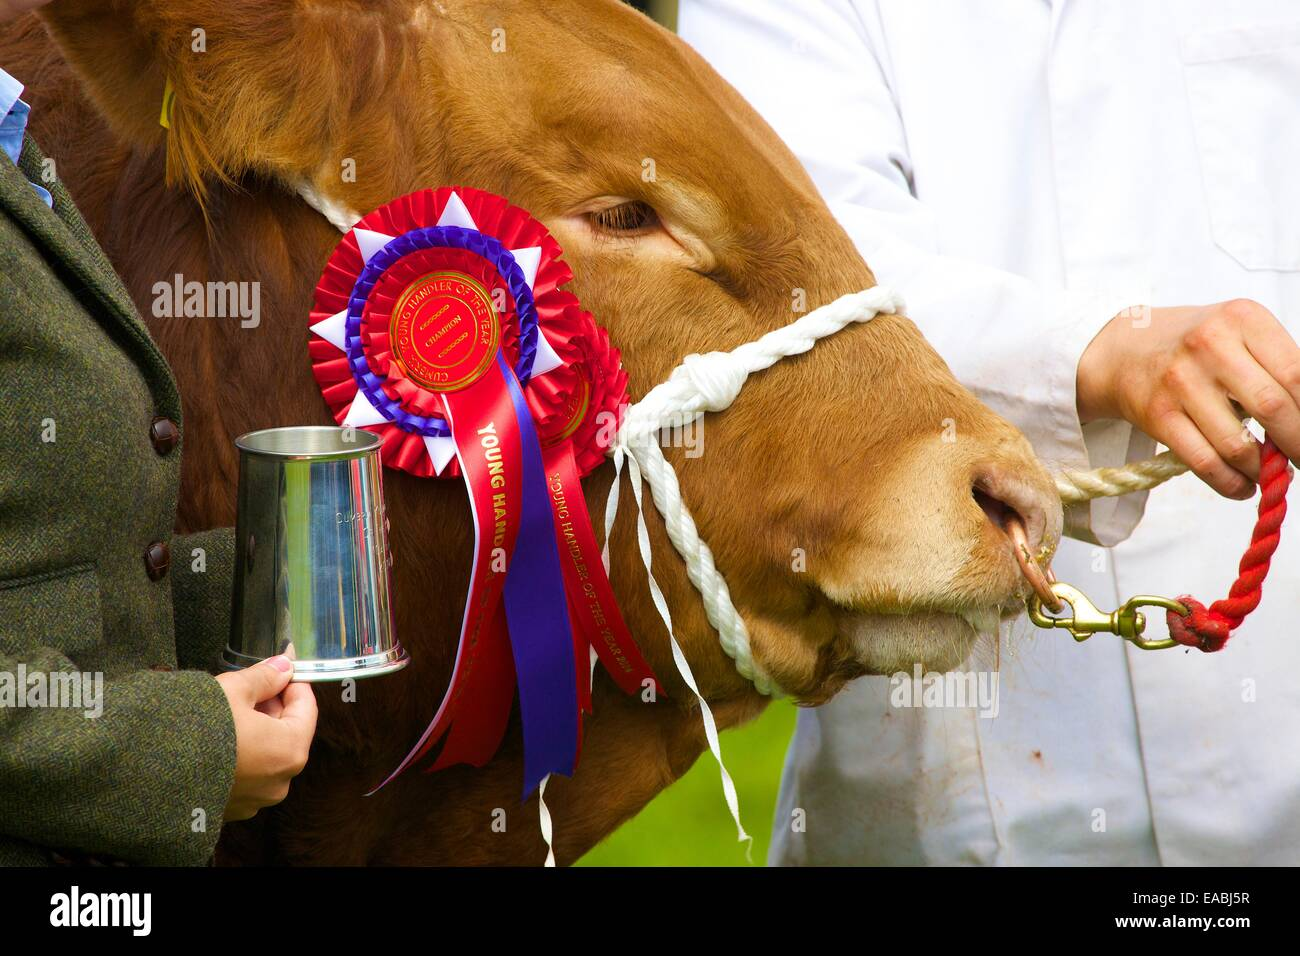 Bull with first prize rosette  at Hesket Newmarket Agricultural Show, Hesket Newmarket, Cumbria, England, United - Stock Image